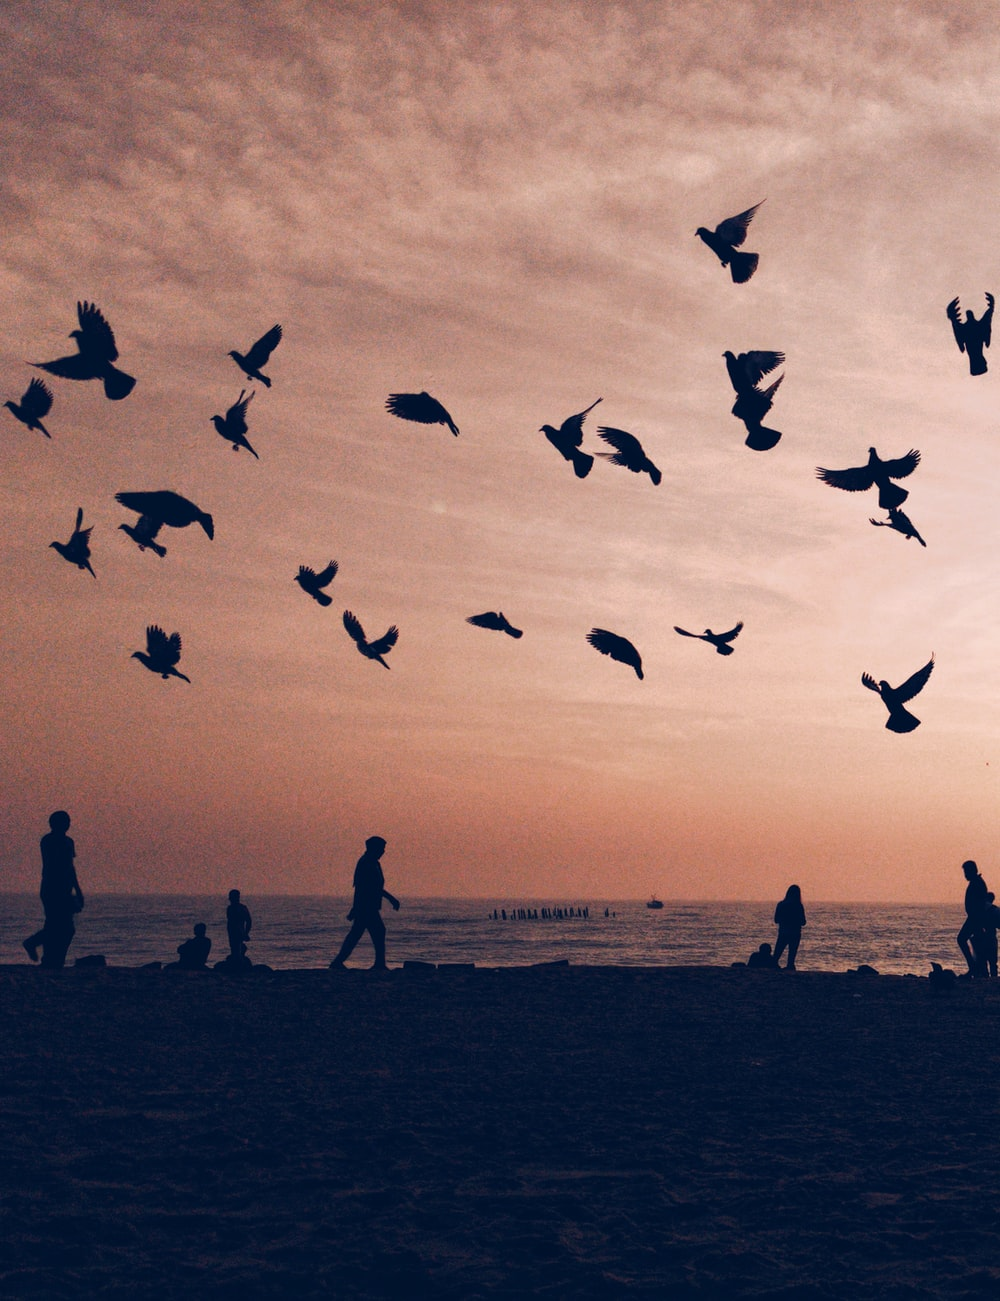 silhouette of flock of birds flying on seashore with people walking and standing during sunset